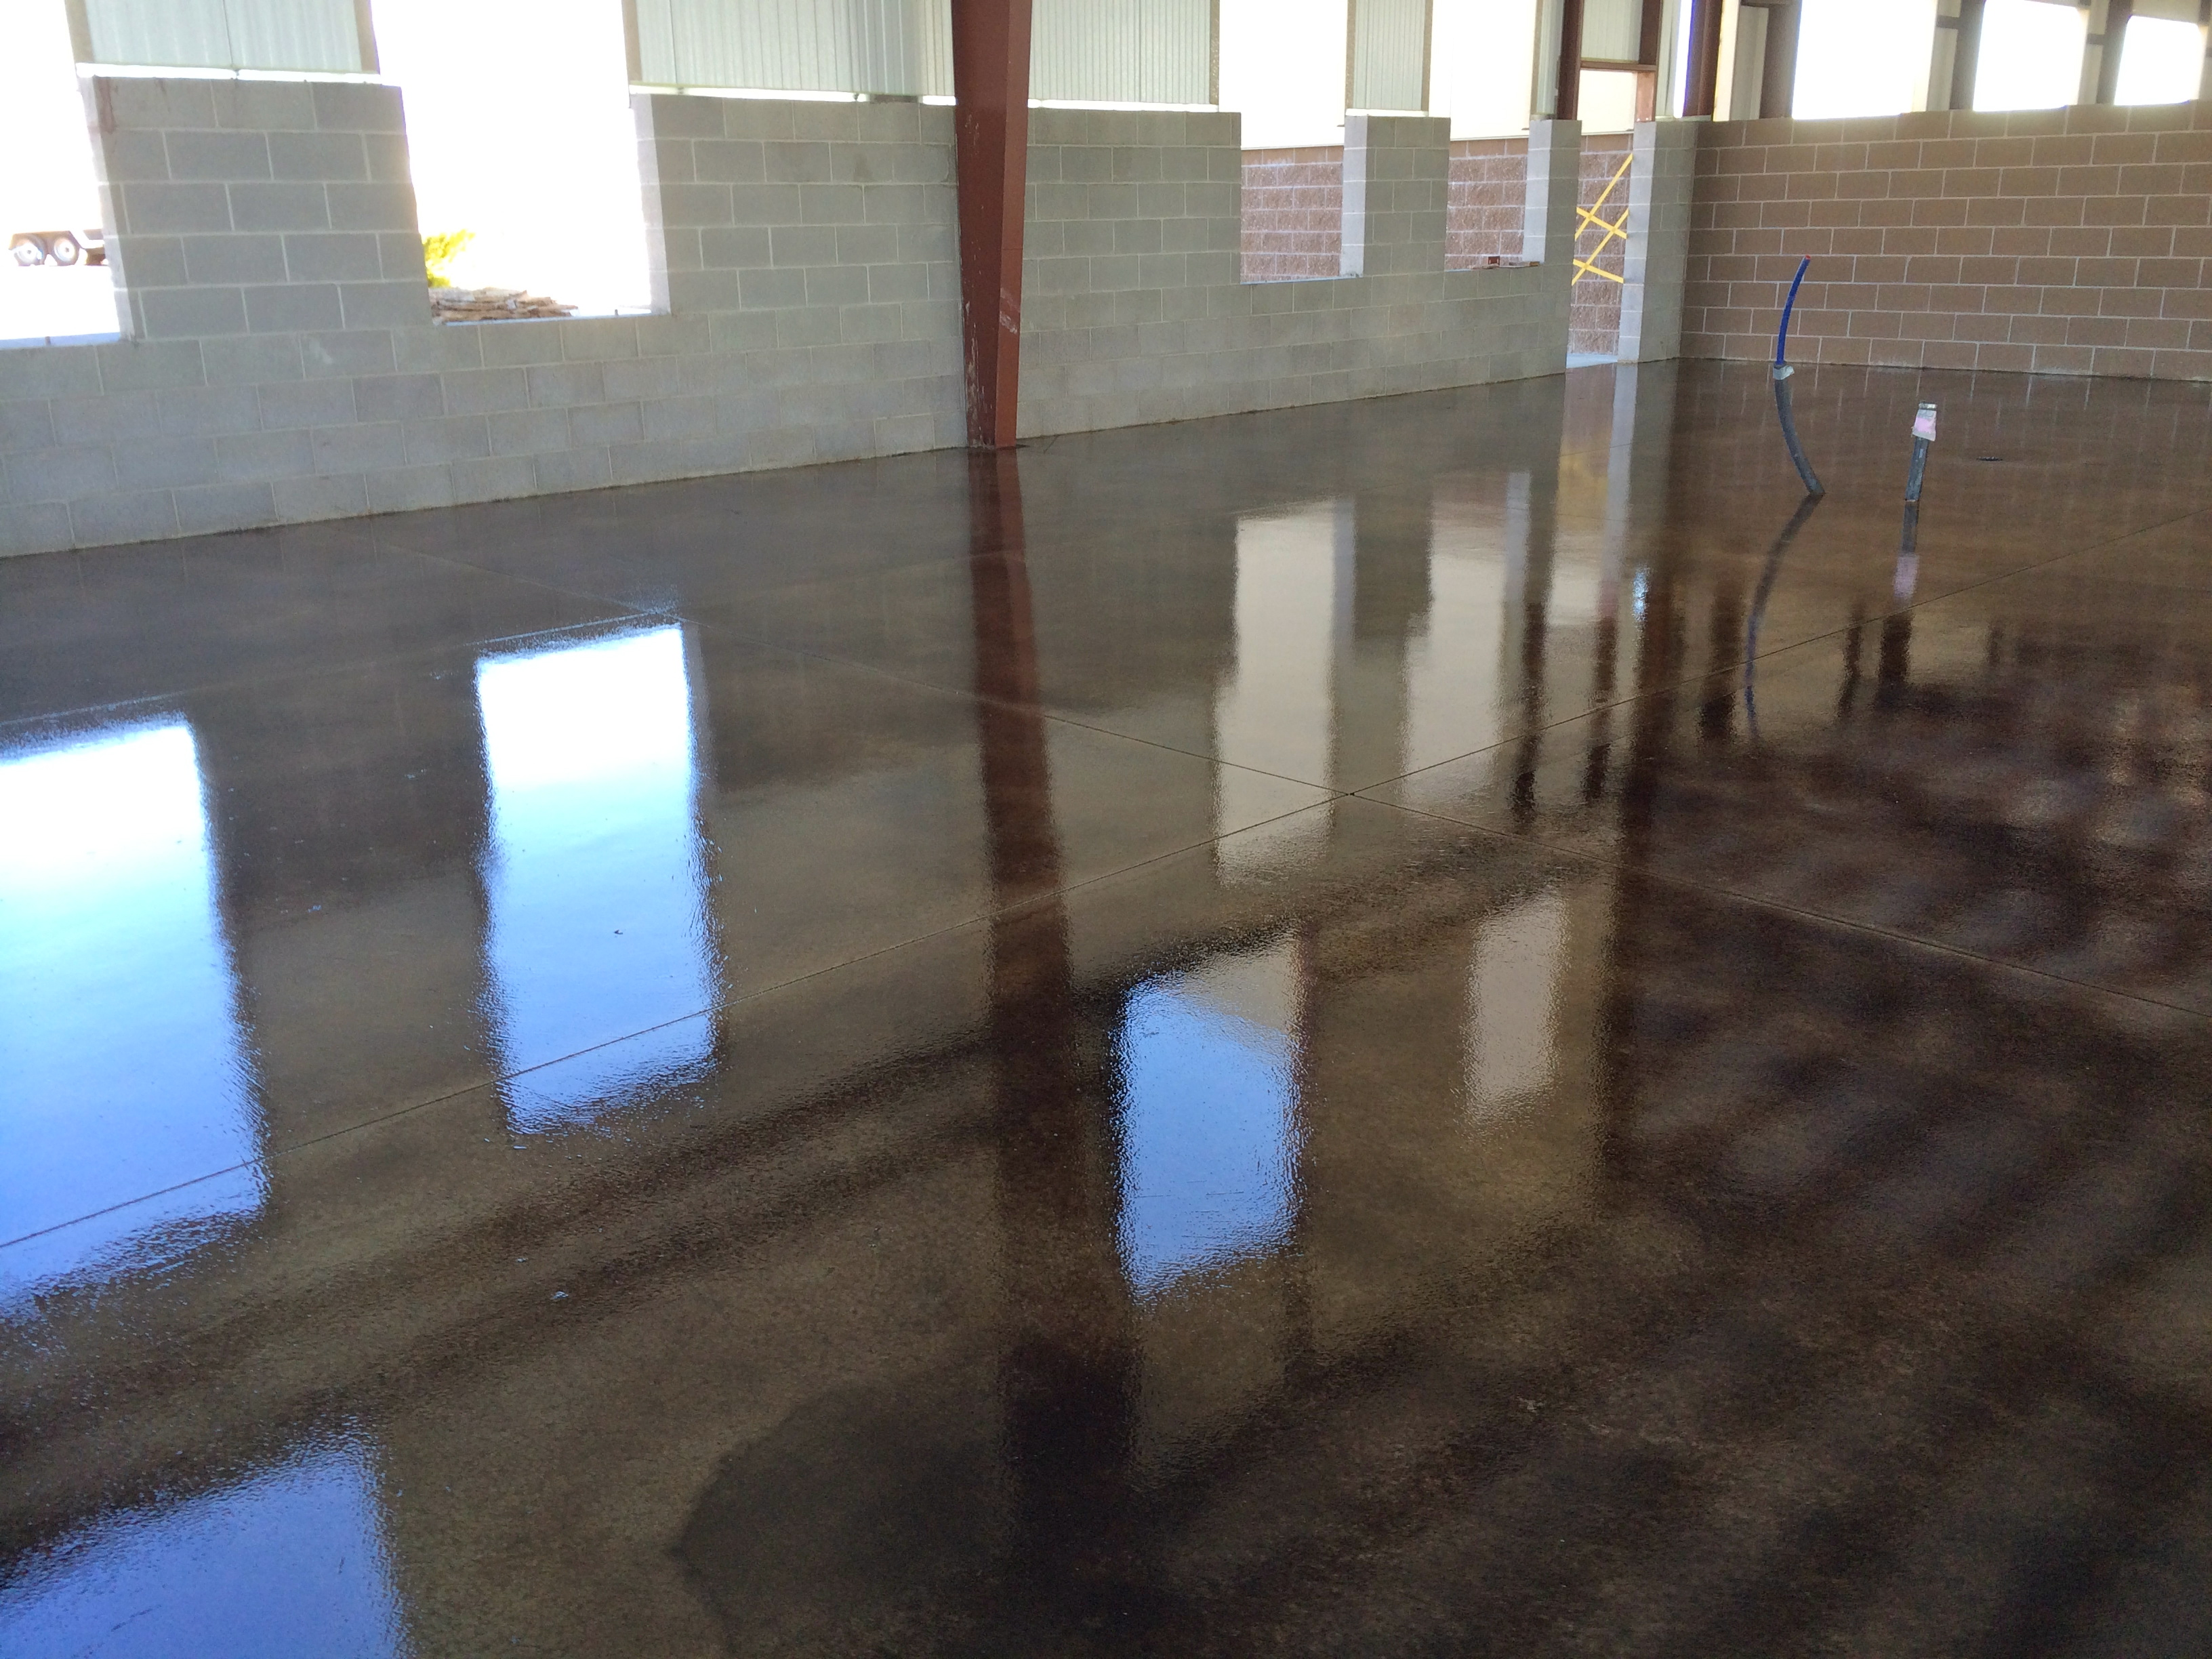 Concrete Acid Staining Utah - Stained Concrete Salt Lake City, UT | Quality Pro